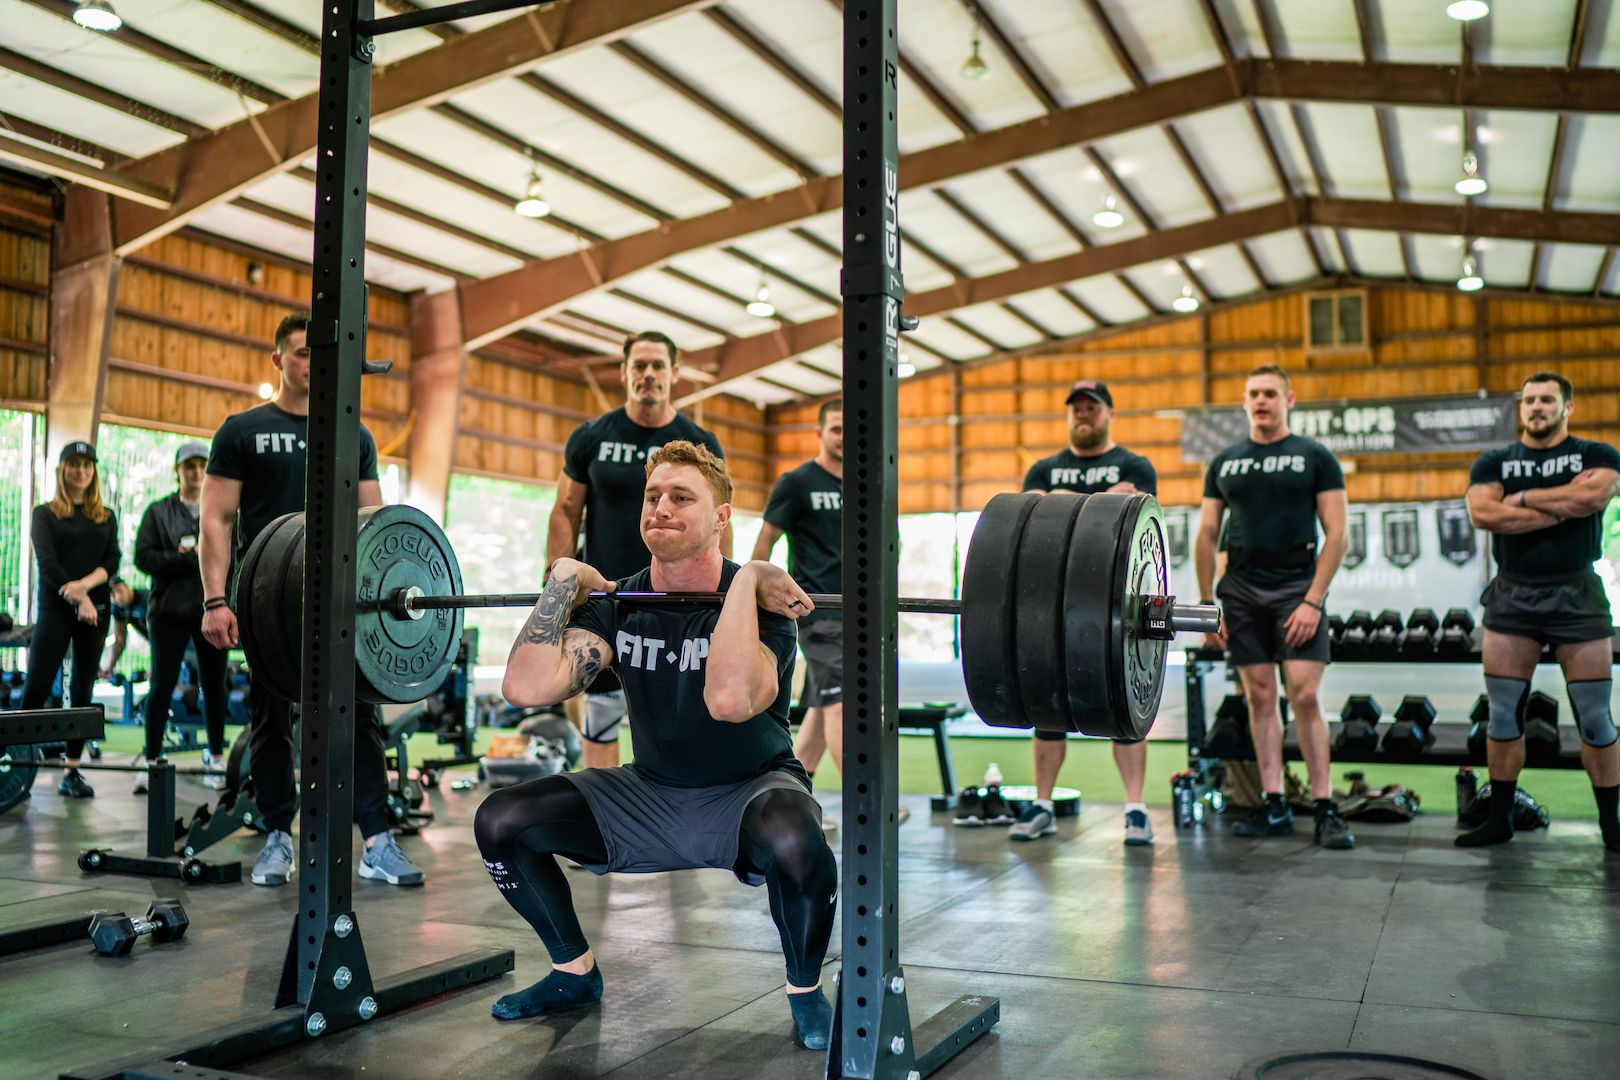 How One Organisation Wants to Save Veterans' Lives Through Fitness